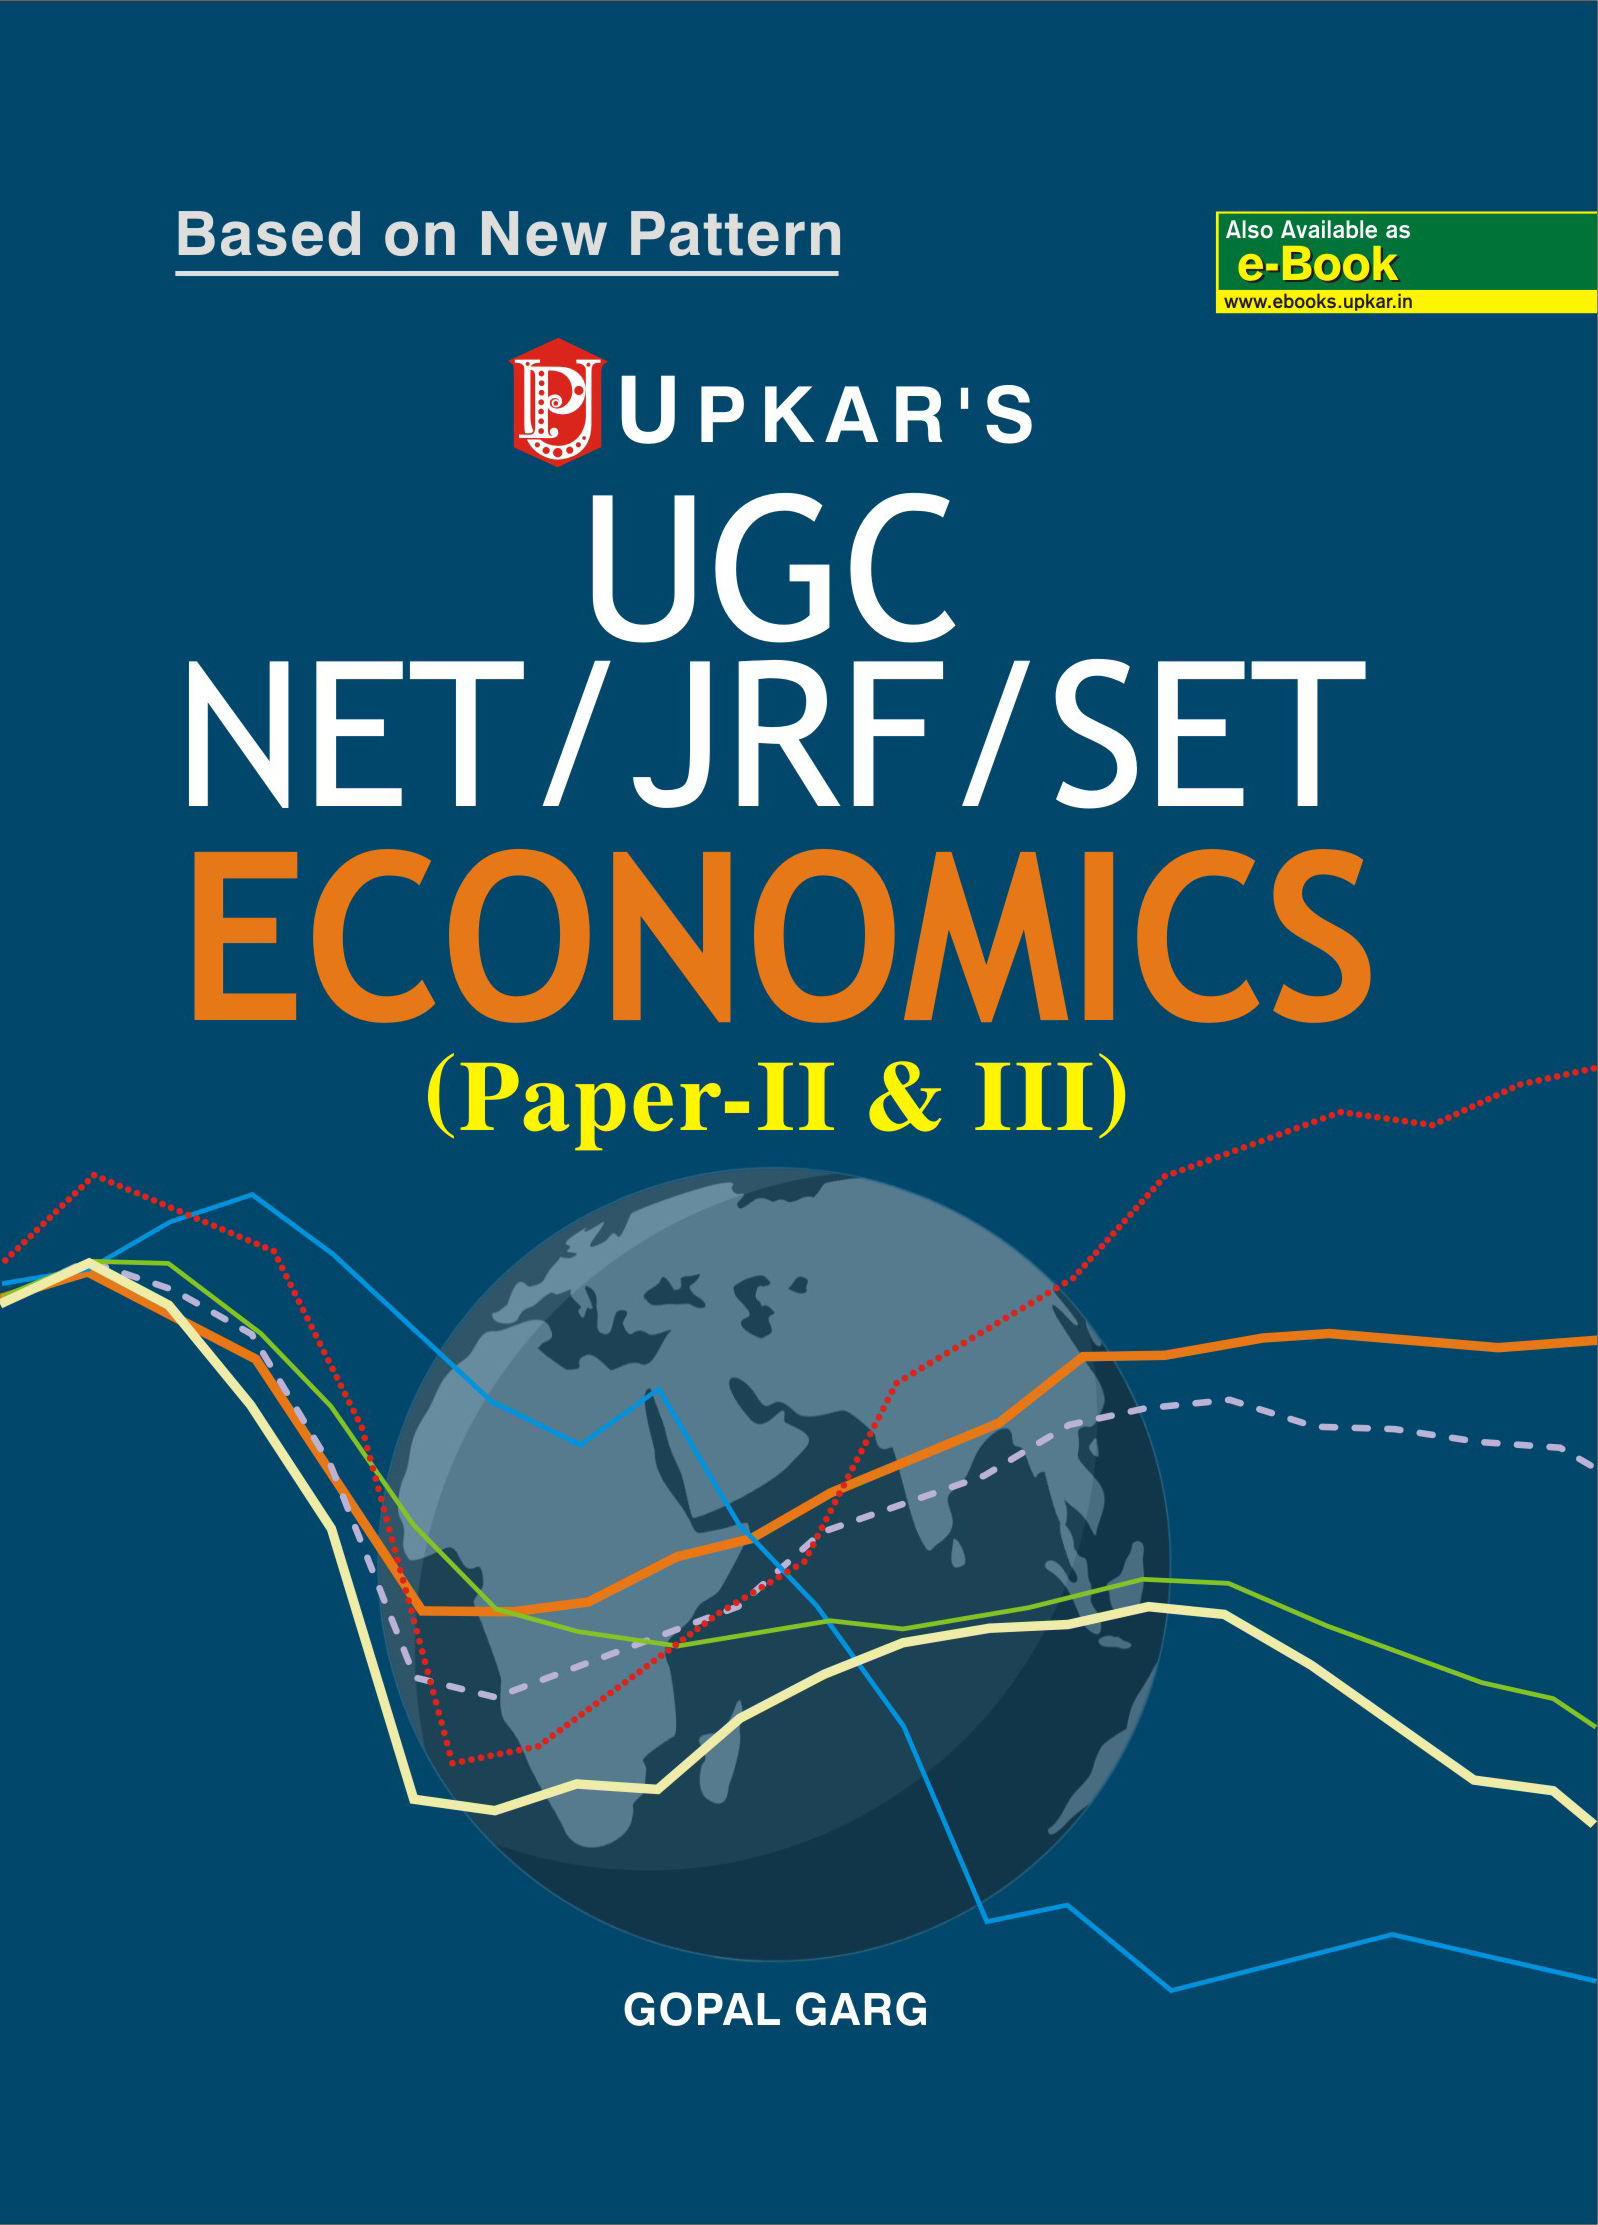 Economics Paper II and Paper III for UGC NET JRF SET